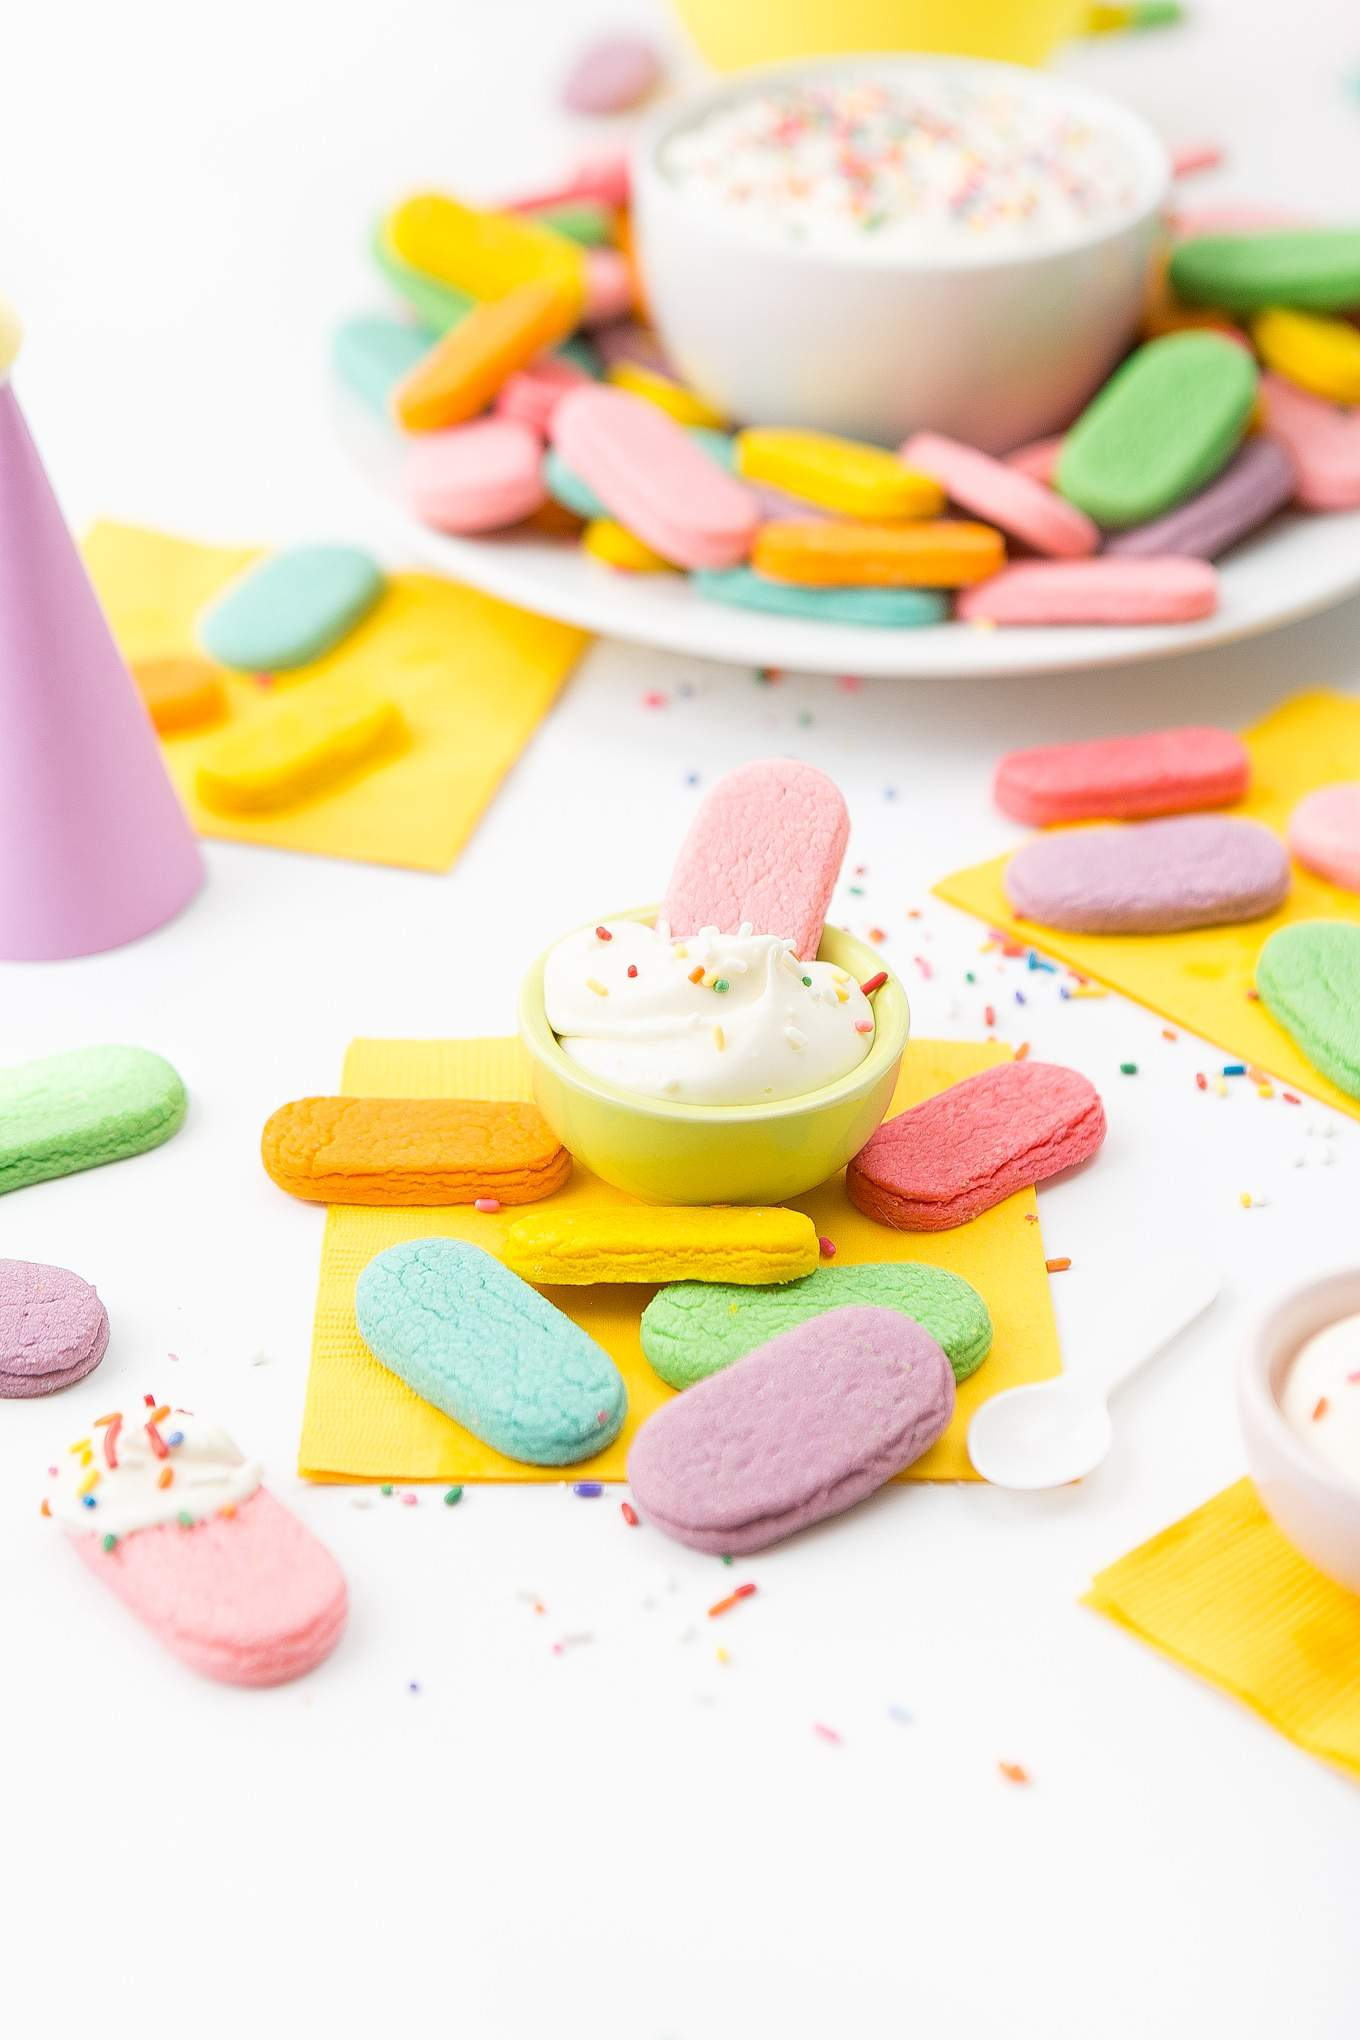 Pink sugar cookie being dipped in small bowl of frosting.